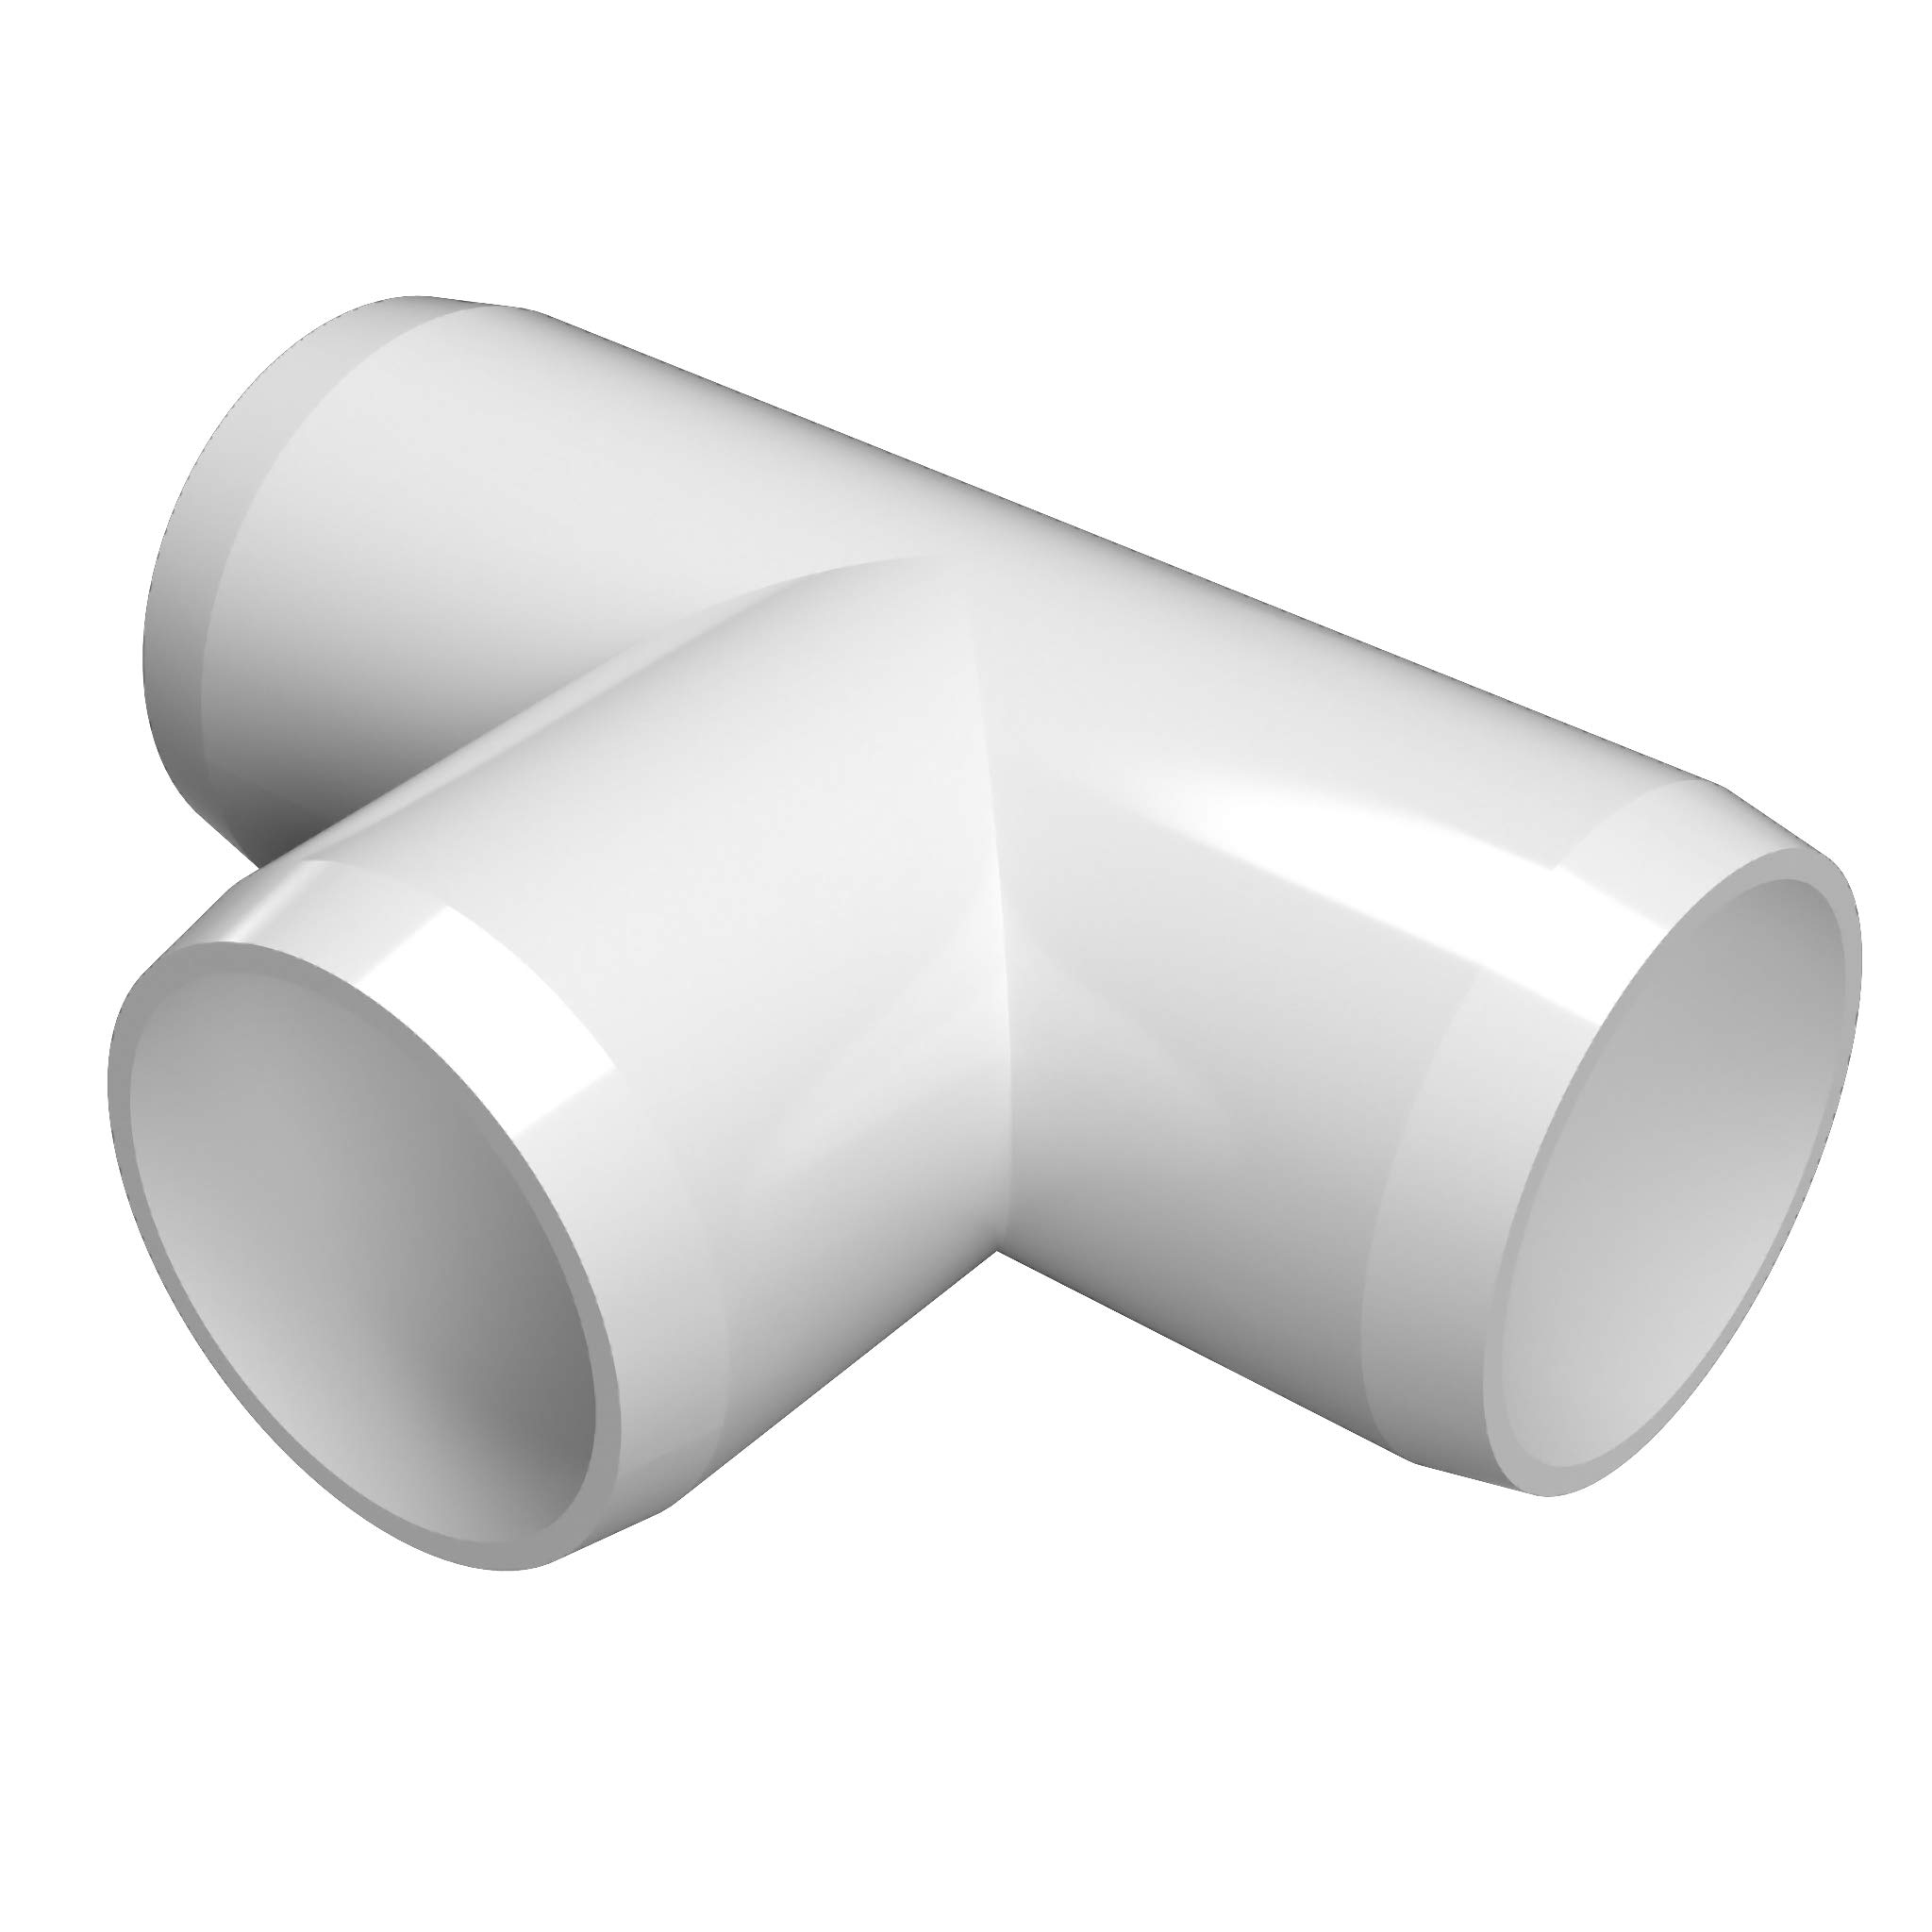 FORMUFIT F001TEE-WH-4 Tee PVC Fitting, Furniture Grade, 1'' Size, White (Pack of 4)